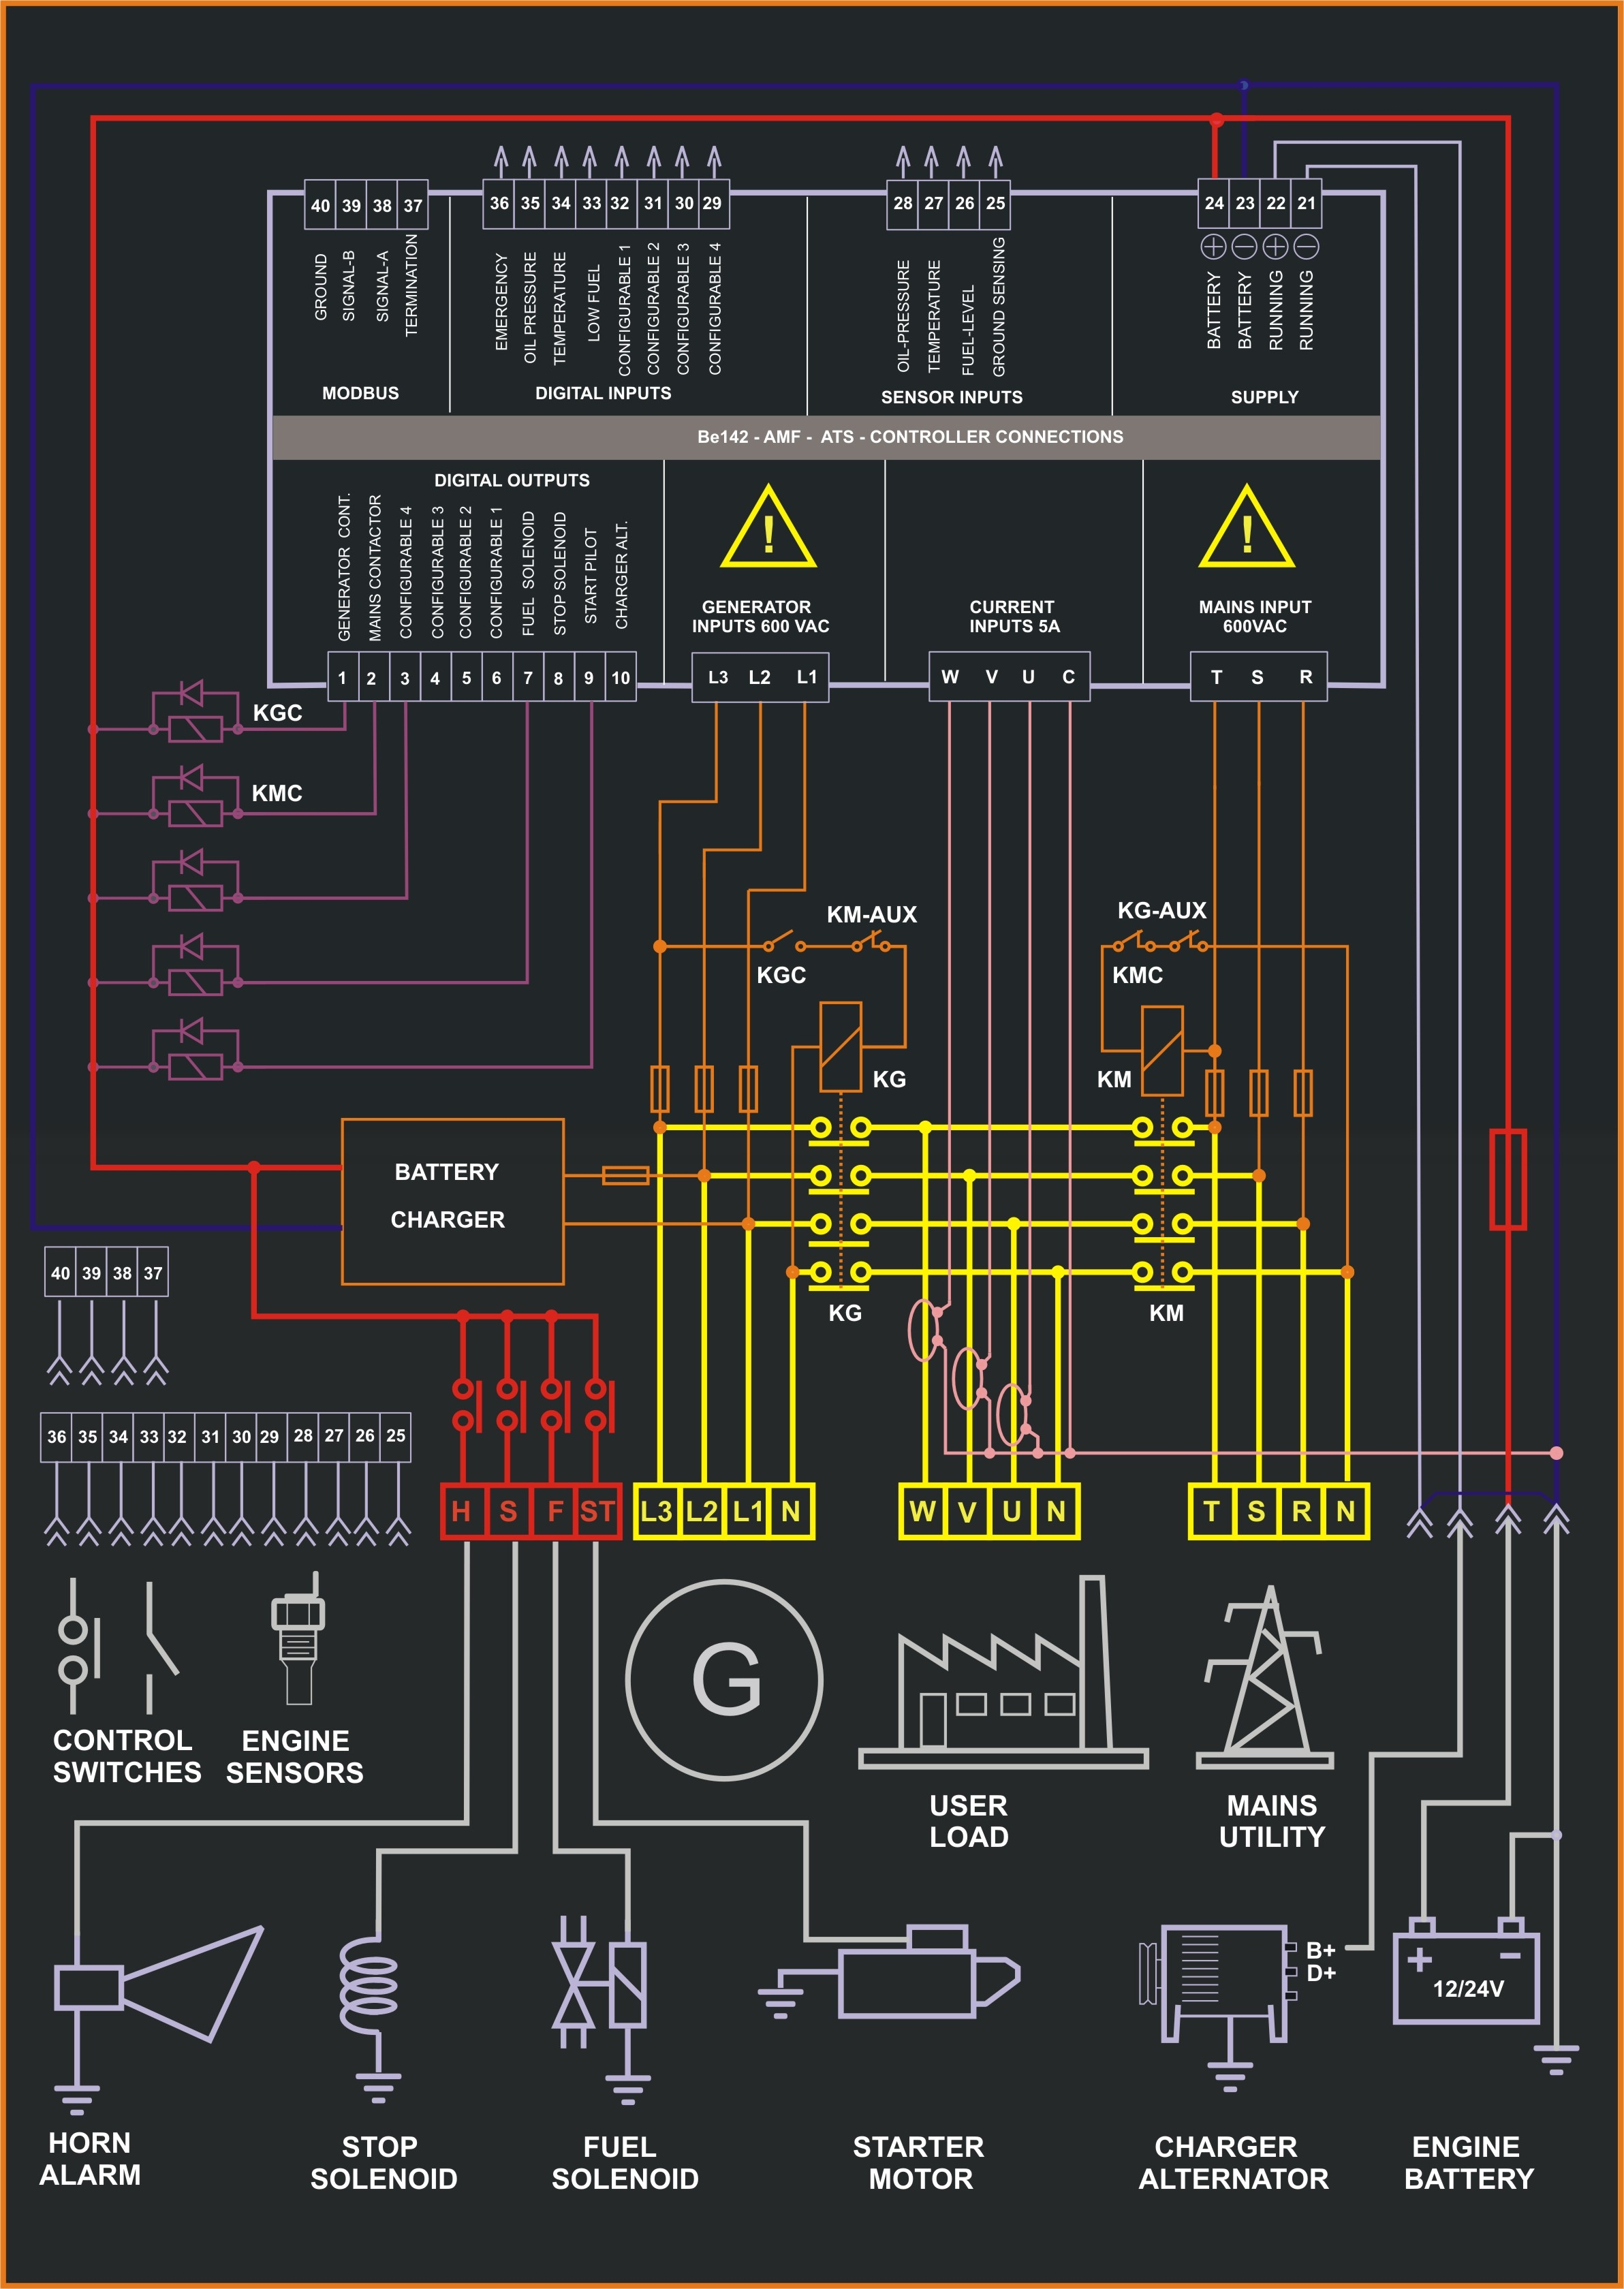 Control panel circuit diagram pdf ats control panel wiring diagram mk ats panel \u2022 wiring diagrams generator control panel wiring diagram pdf at eliteediting.co